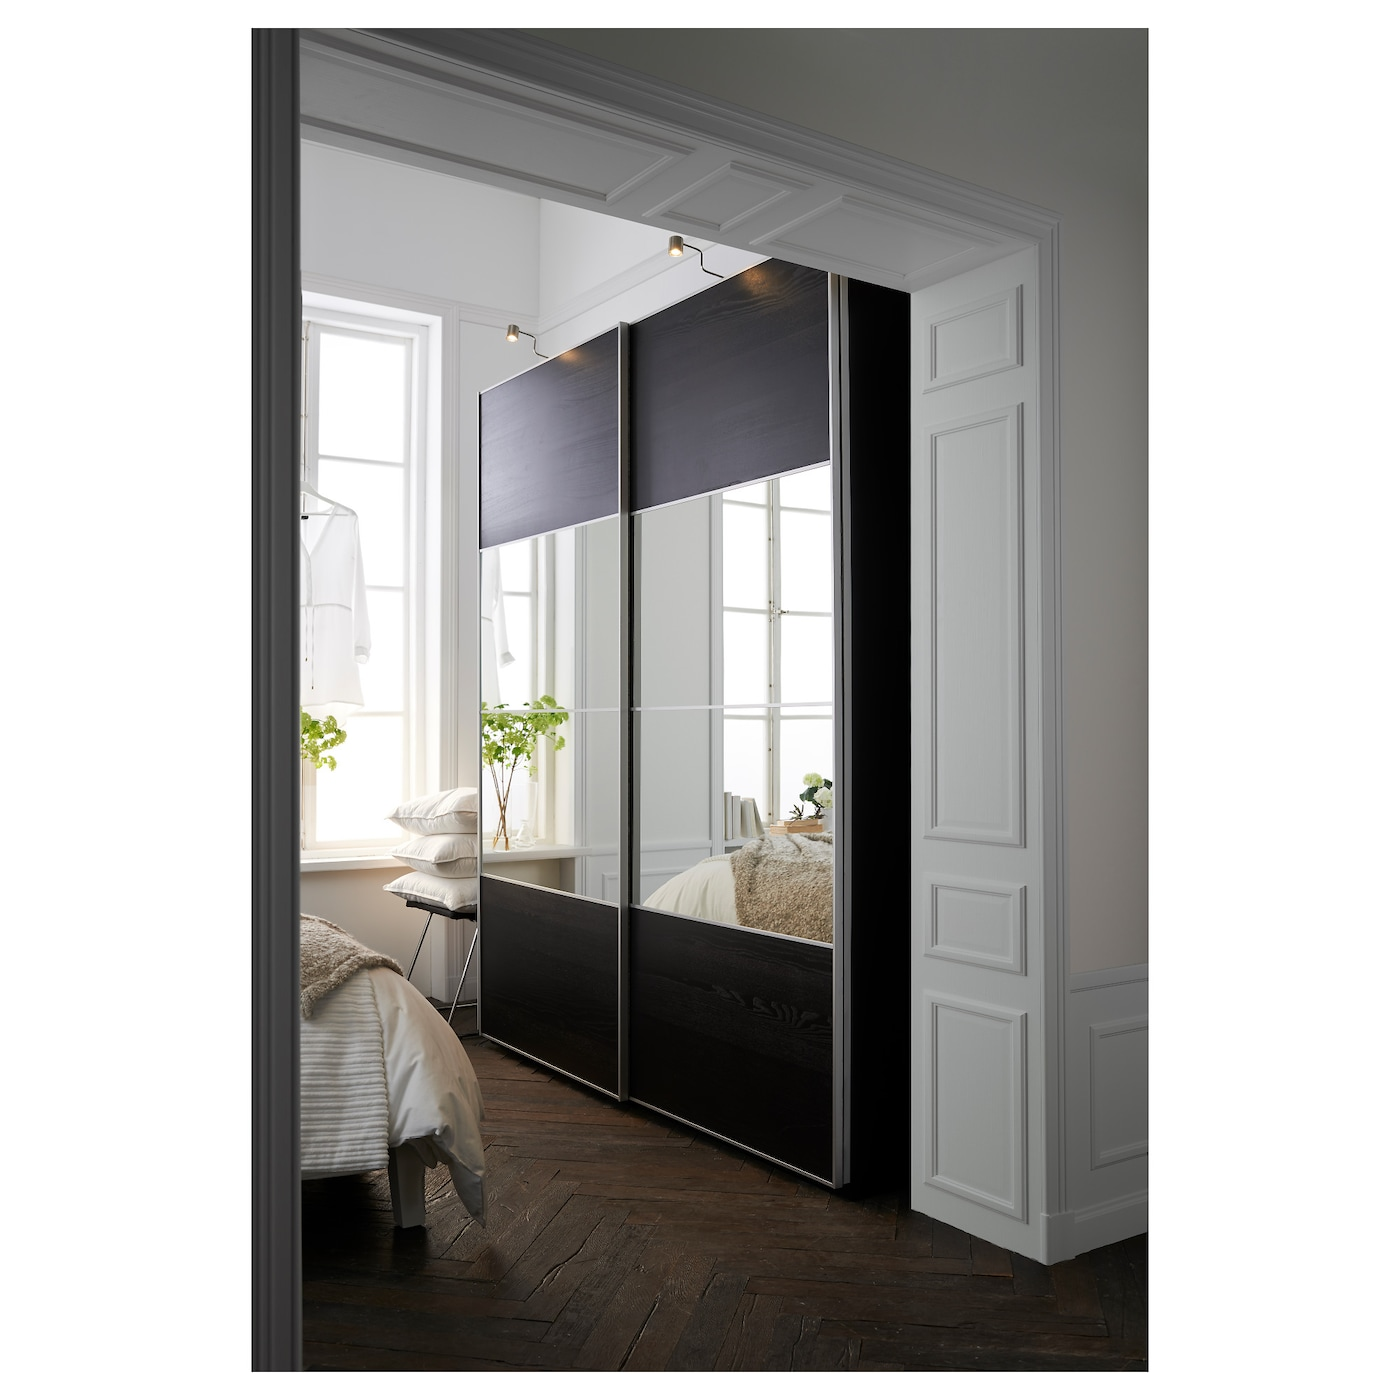 Pax wardrobe black brown auli ilseng 200x66x236 cm ikea - Armoire 3 portes coulissantes but ...